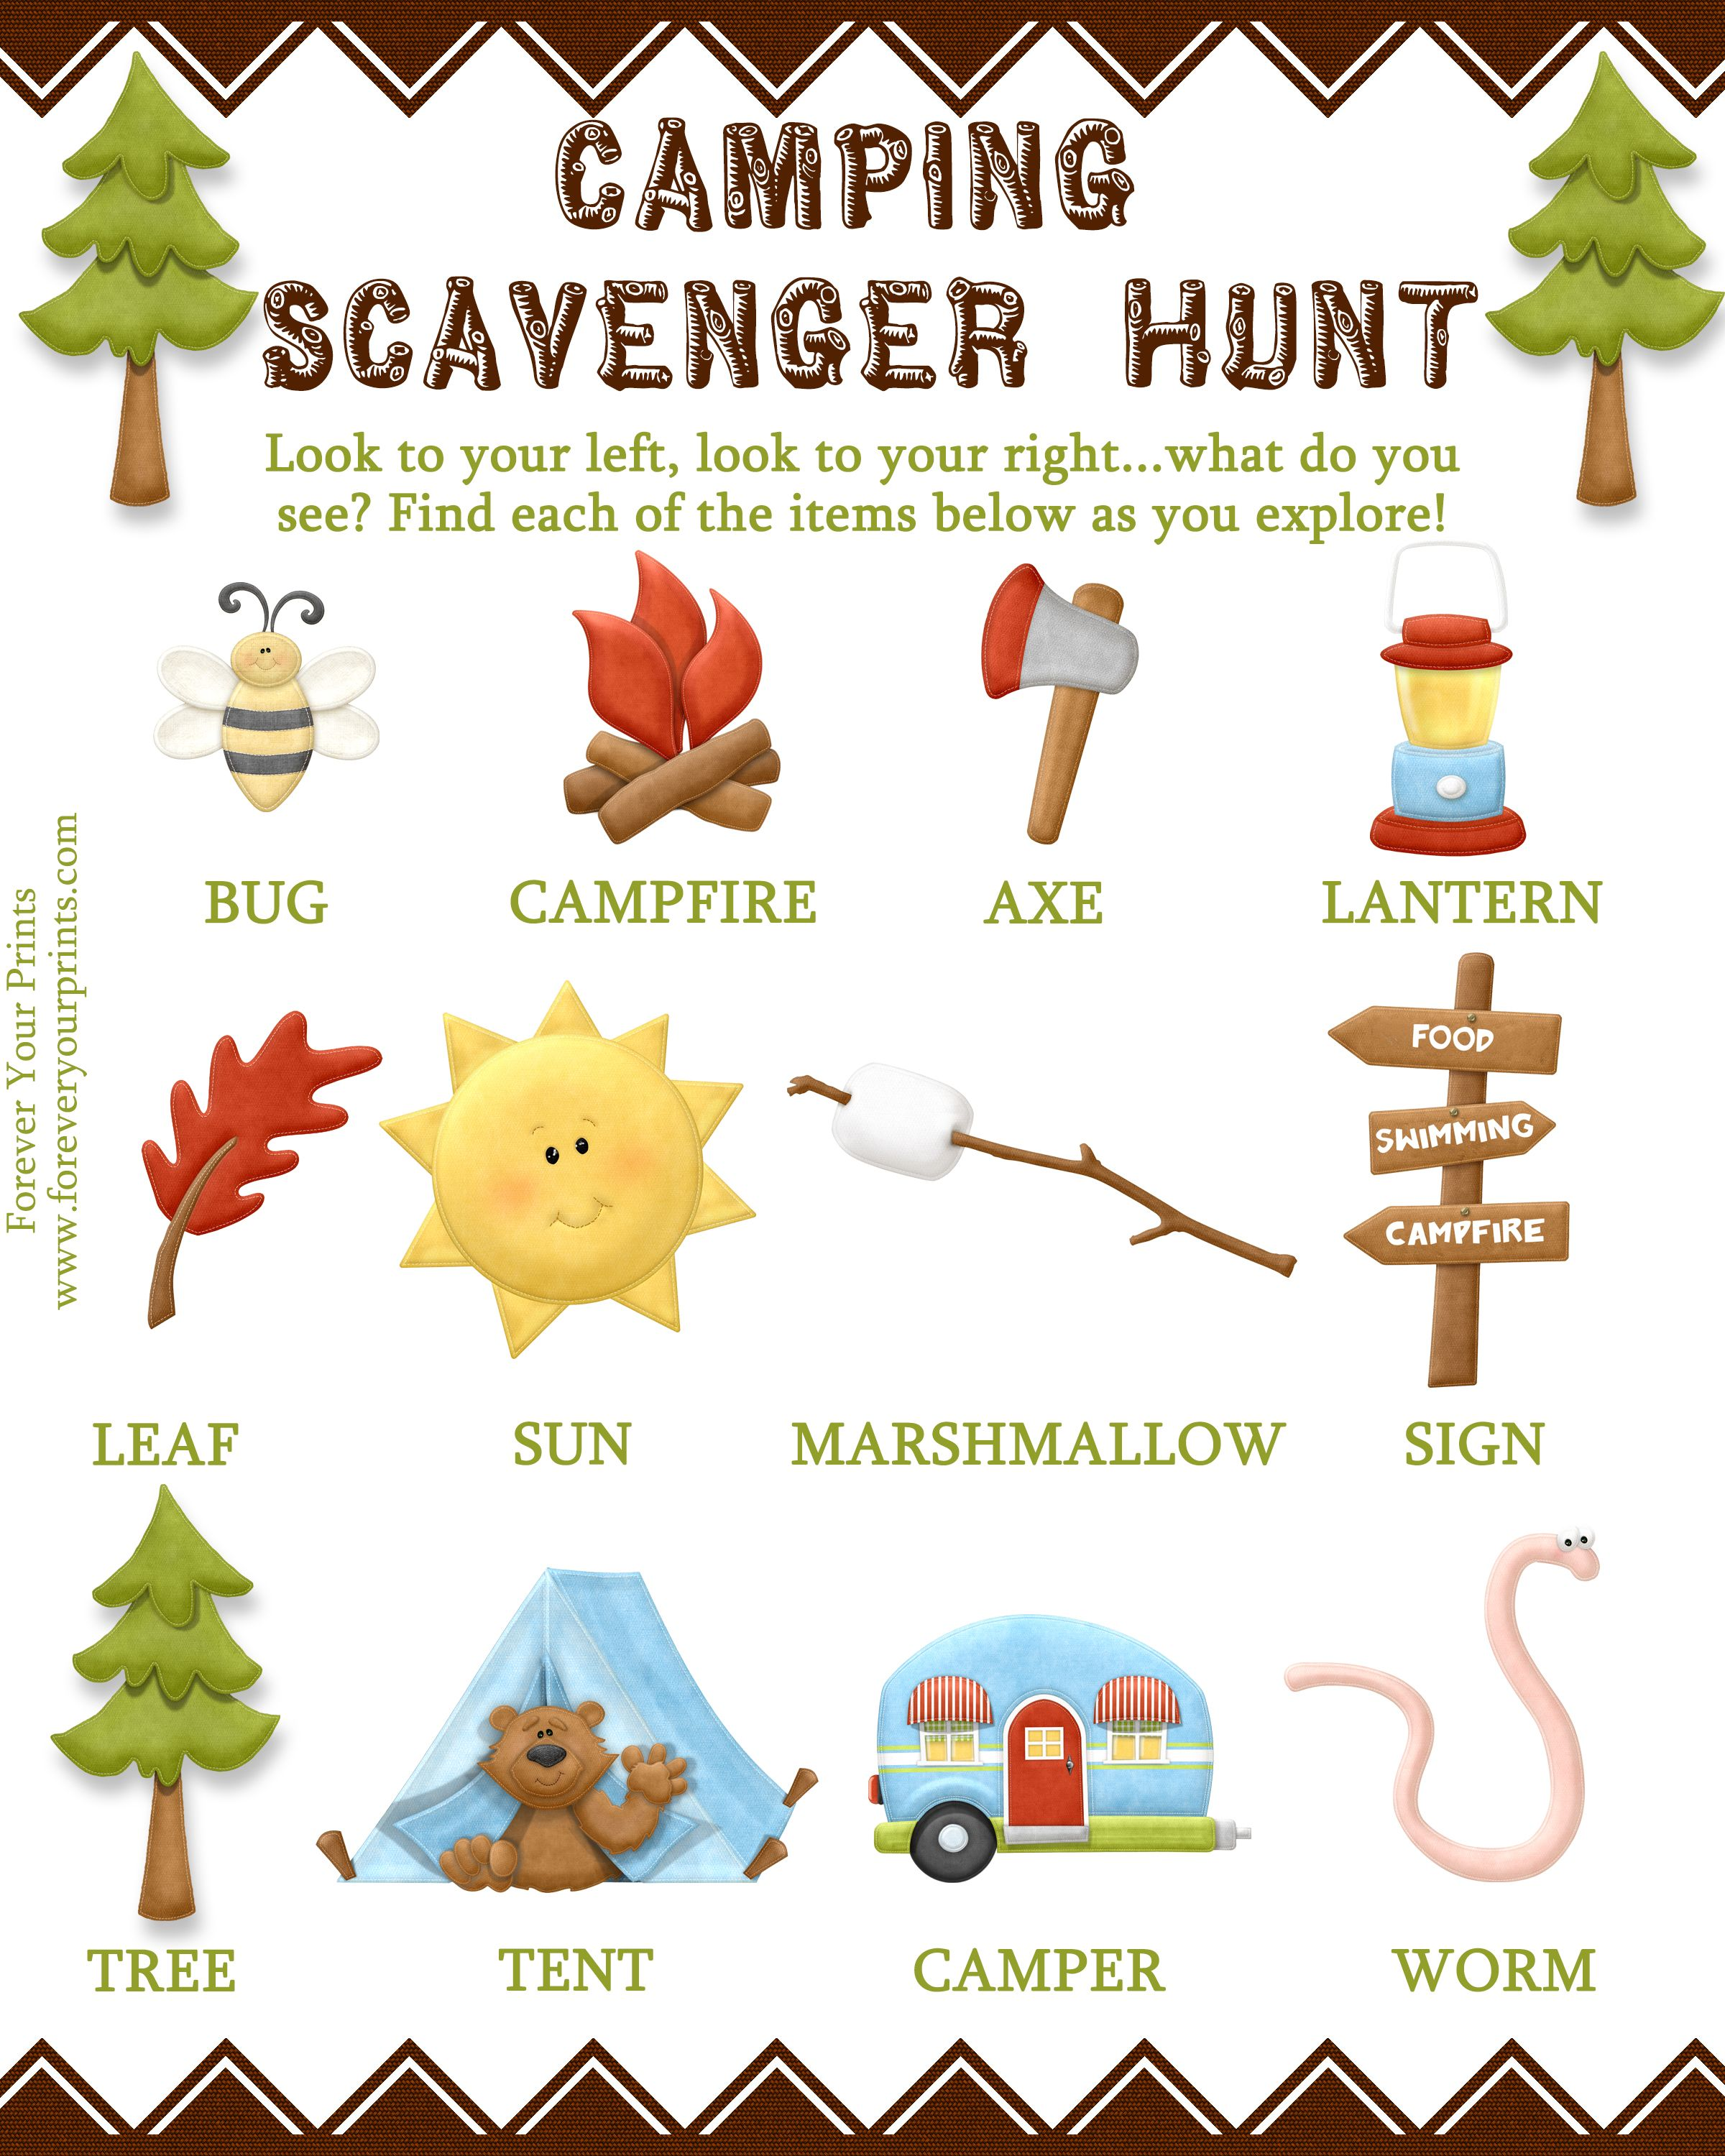 Camping Scavenger Hunt Idea Visit The Image Link For